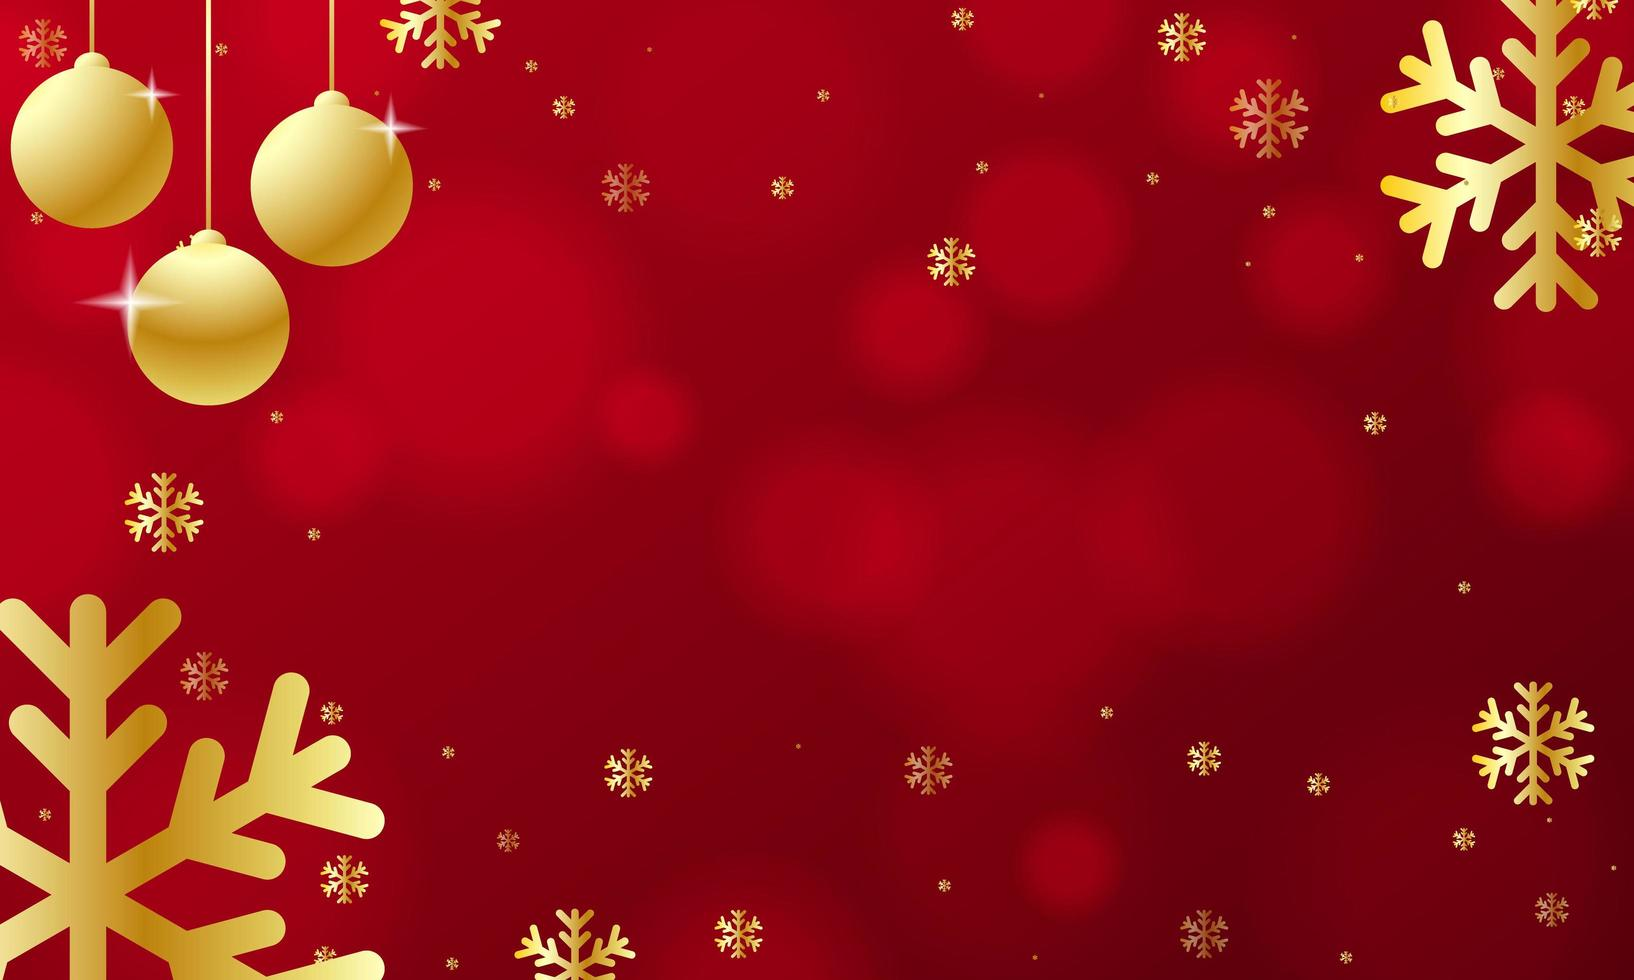 Golden Christmas ornaments and snowflakes on red bokeh vector